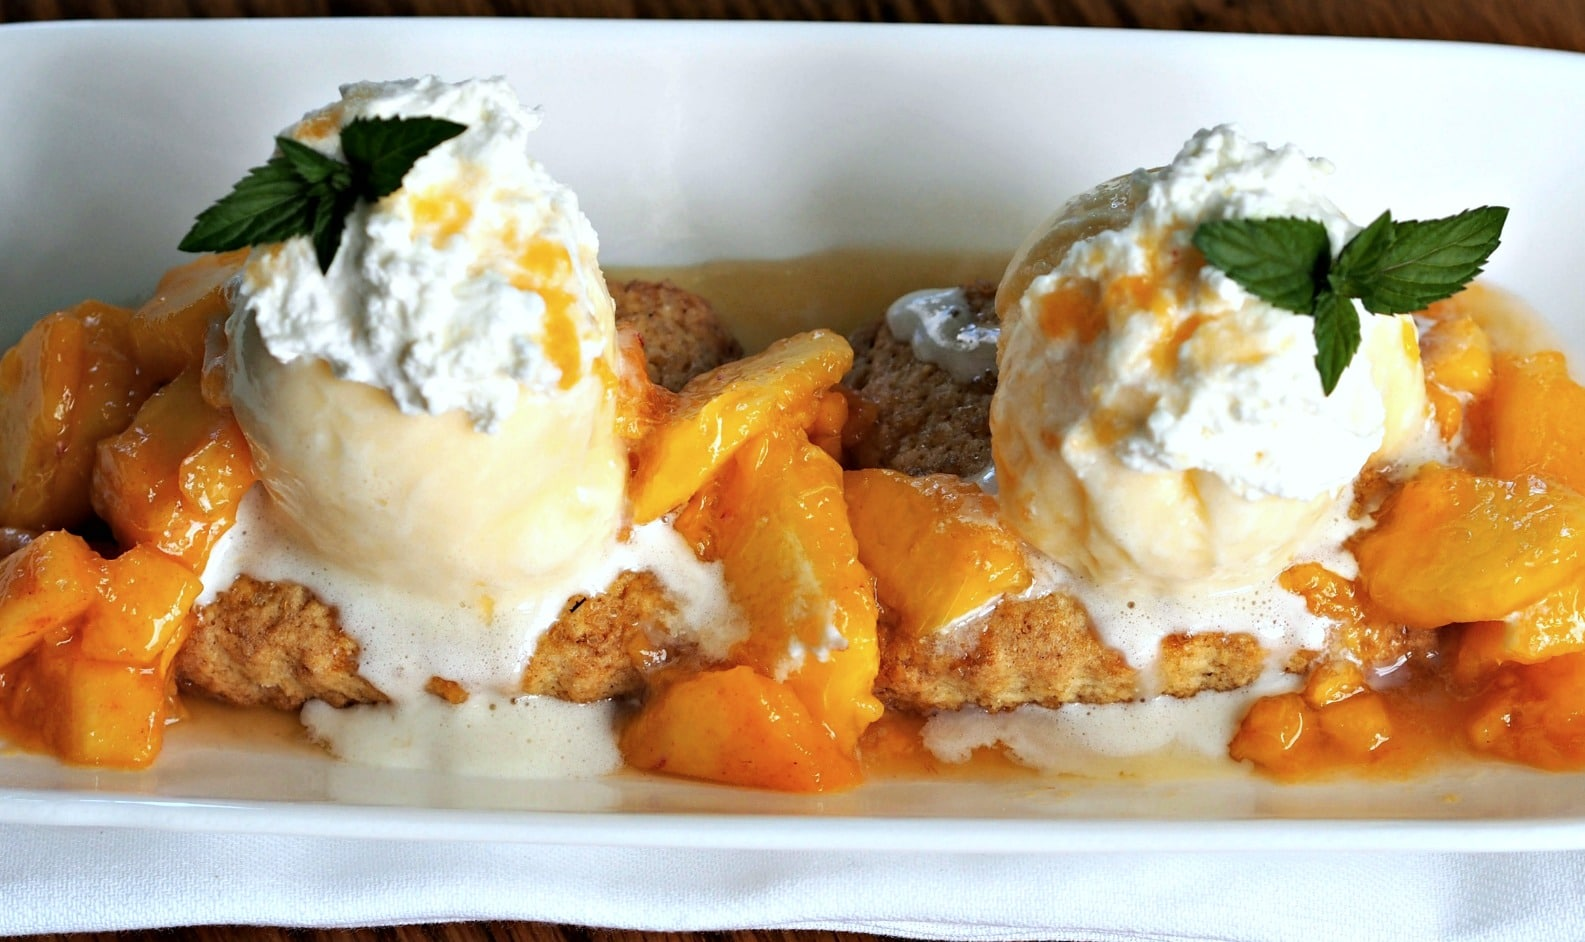 Peach Shortcake made with Simply Sated Perfect Shortcake will become favorite all-time recipe. www.simplysated.com